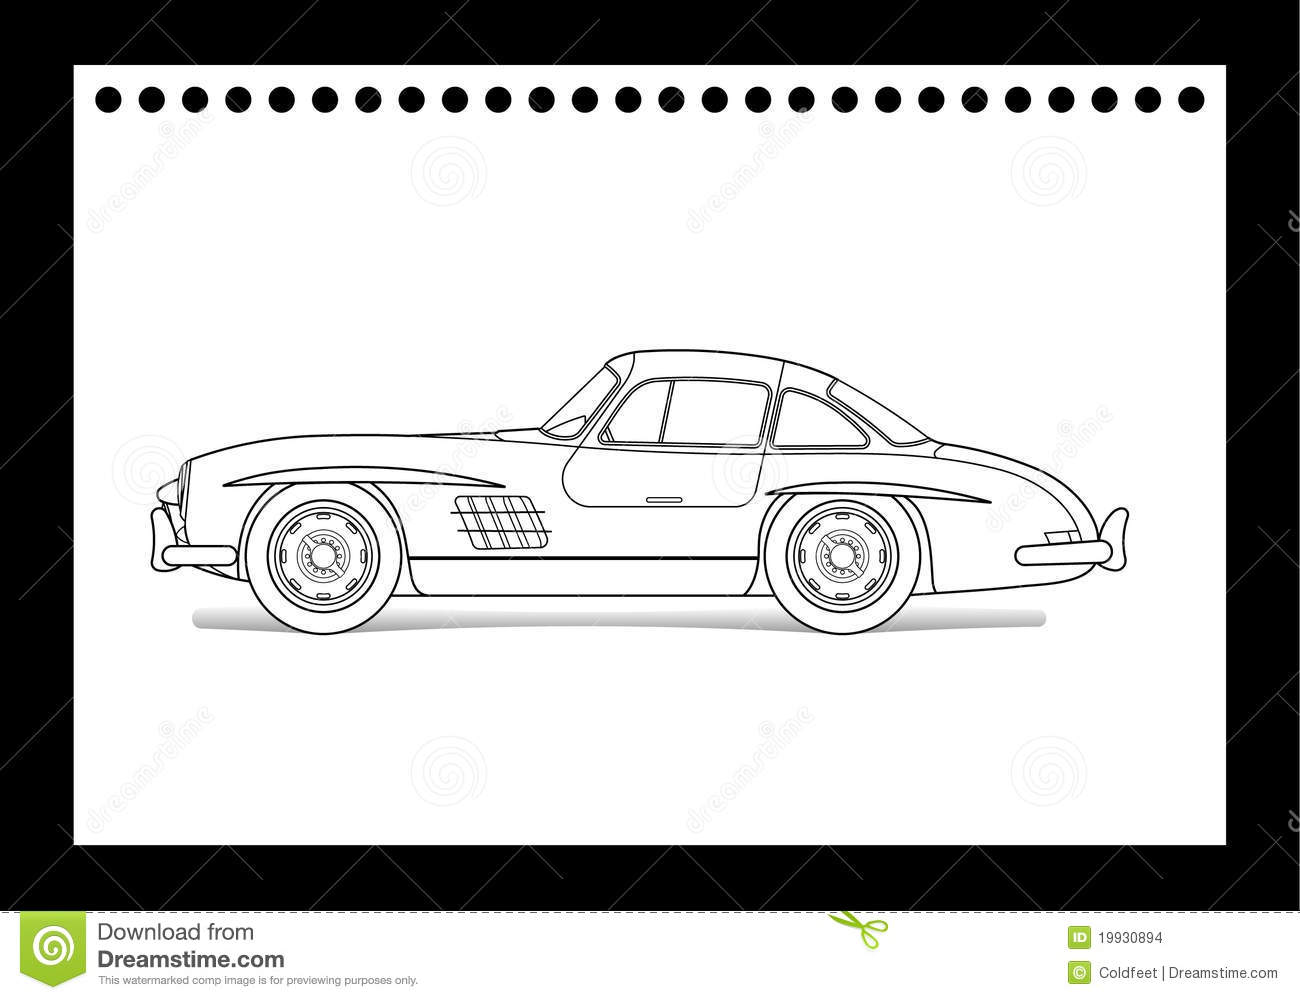 Old car drawing stock vector. Illustration of fast, wheel - 19930894